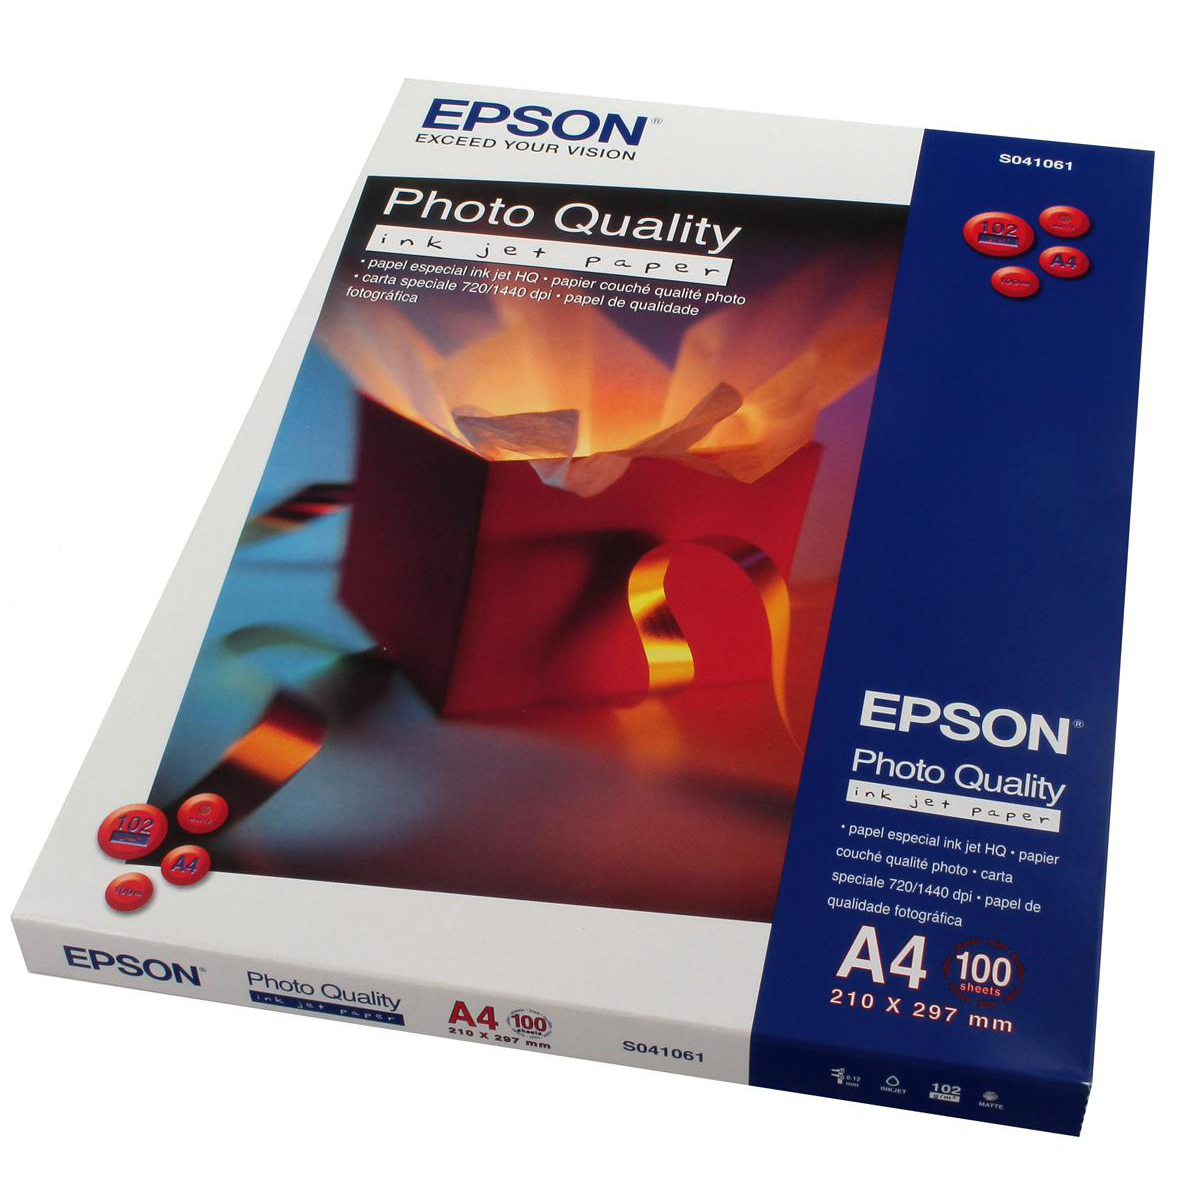 Photo Paper Epson Photo Quality Inkjet Paper Matt 102gsm Max.1440dpi A4 White Ref C13S041061 100 Sheets